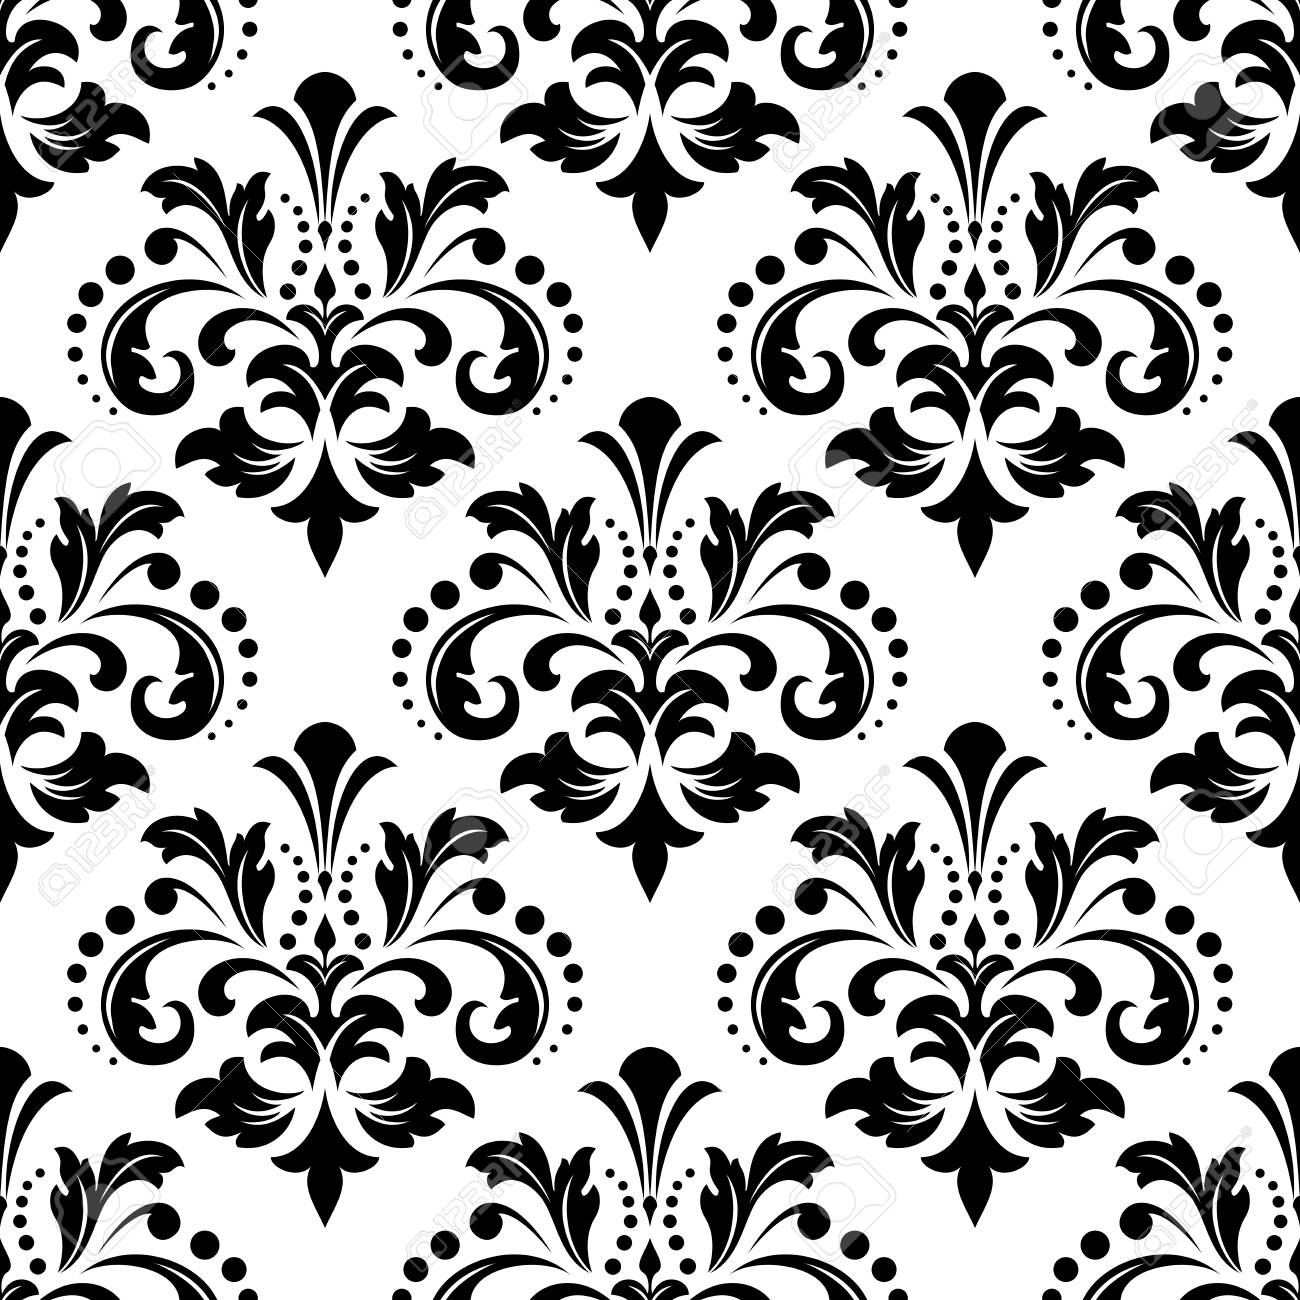 Floral Pattern Vintage Wallpaper In The Baroque Style Seamless